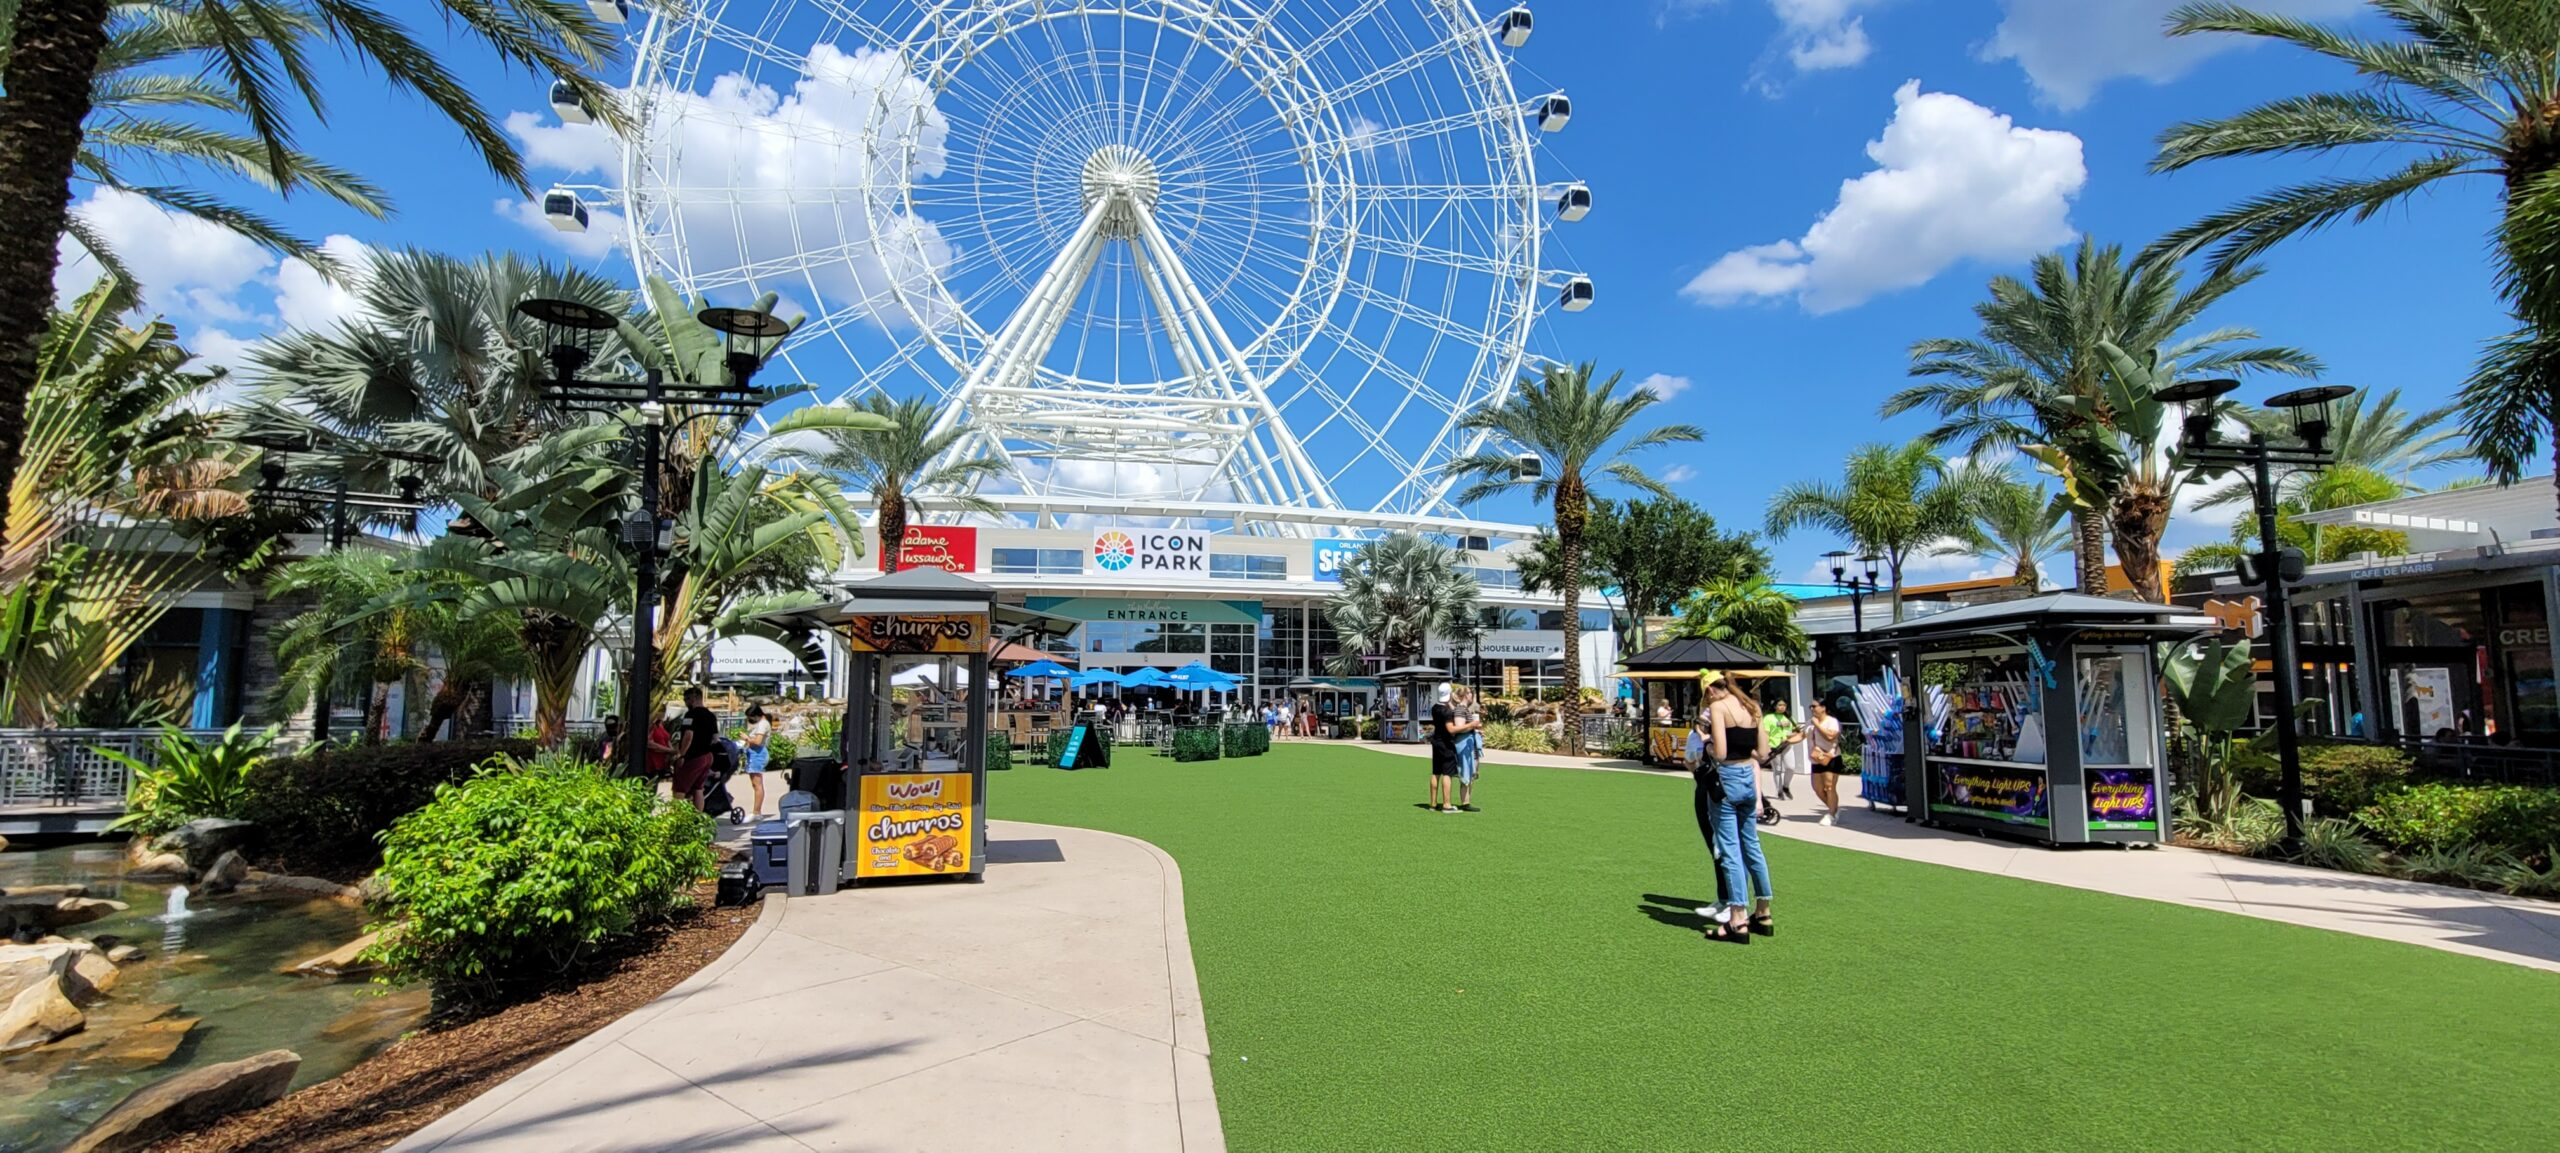 Have a family fun day at ICON Park in Orlando 3